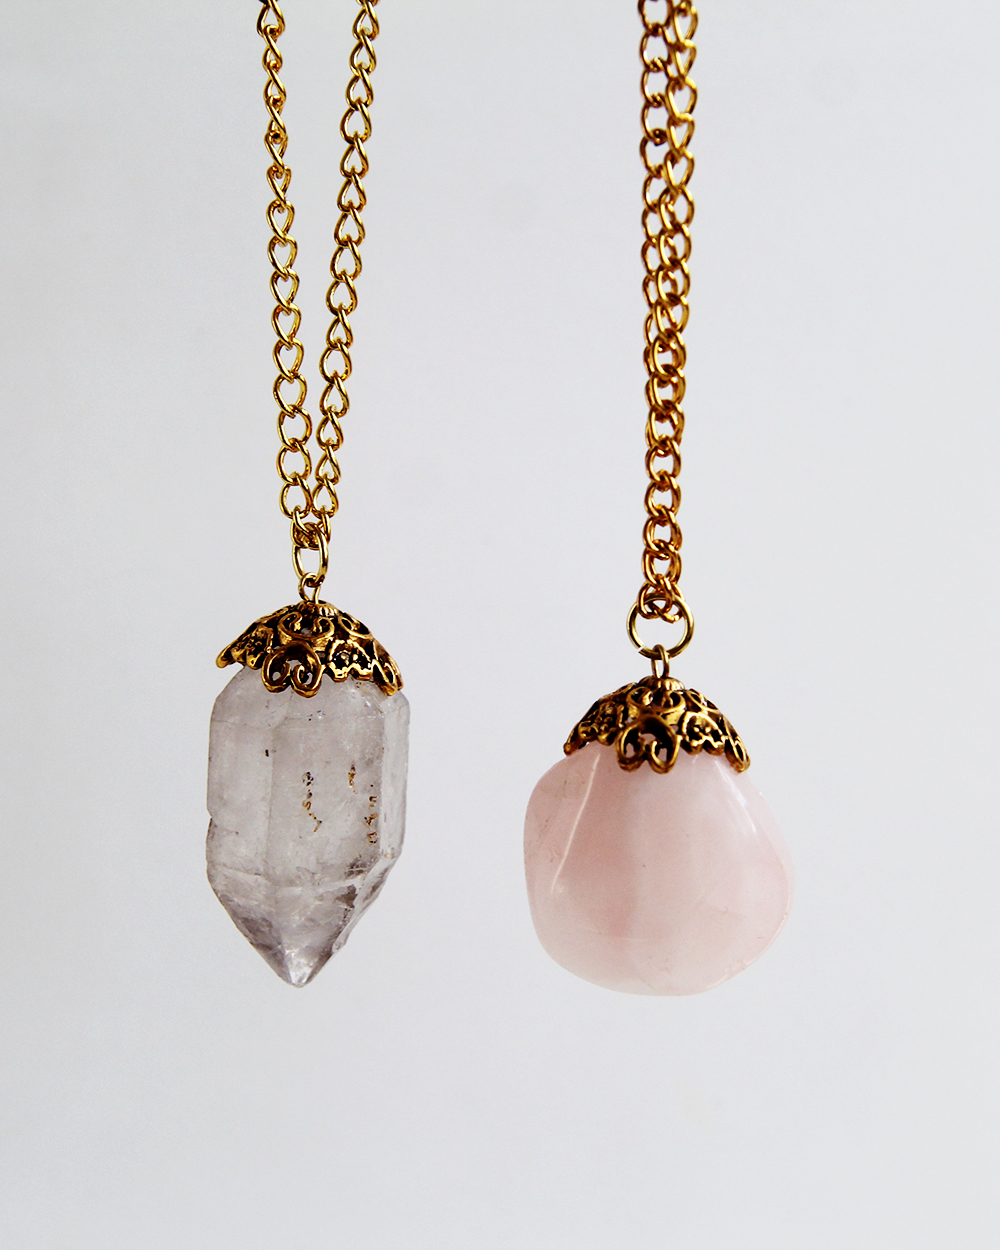 Fall For DIY_Decadent Crystal Necklaces tutorial